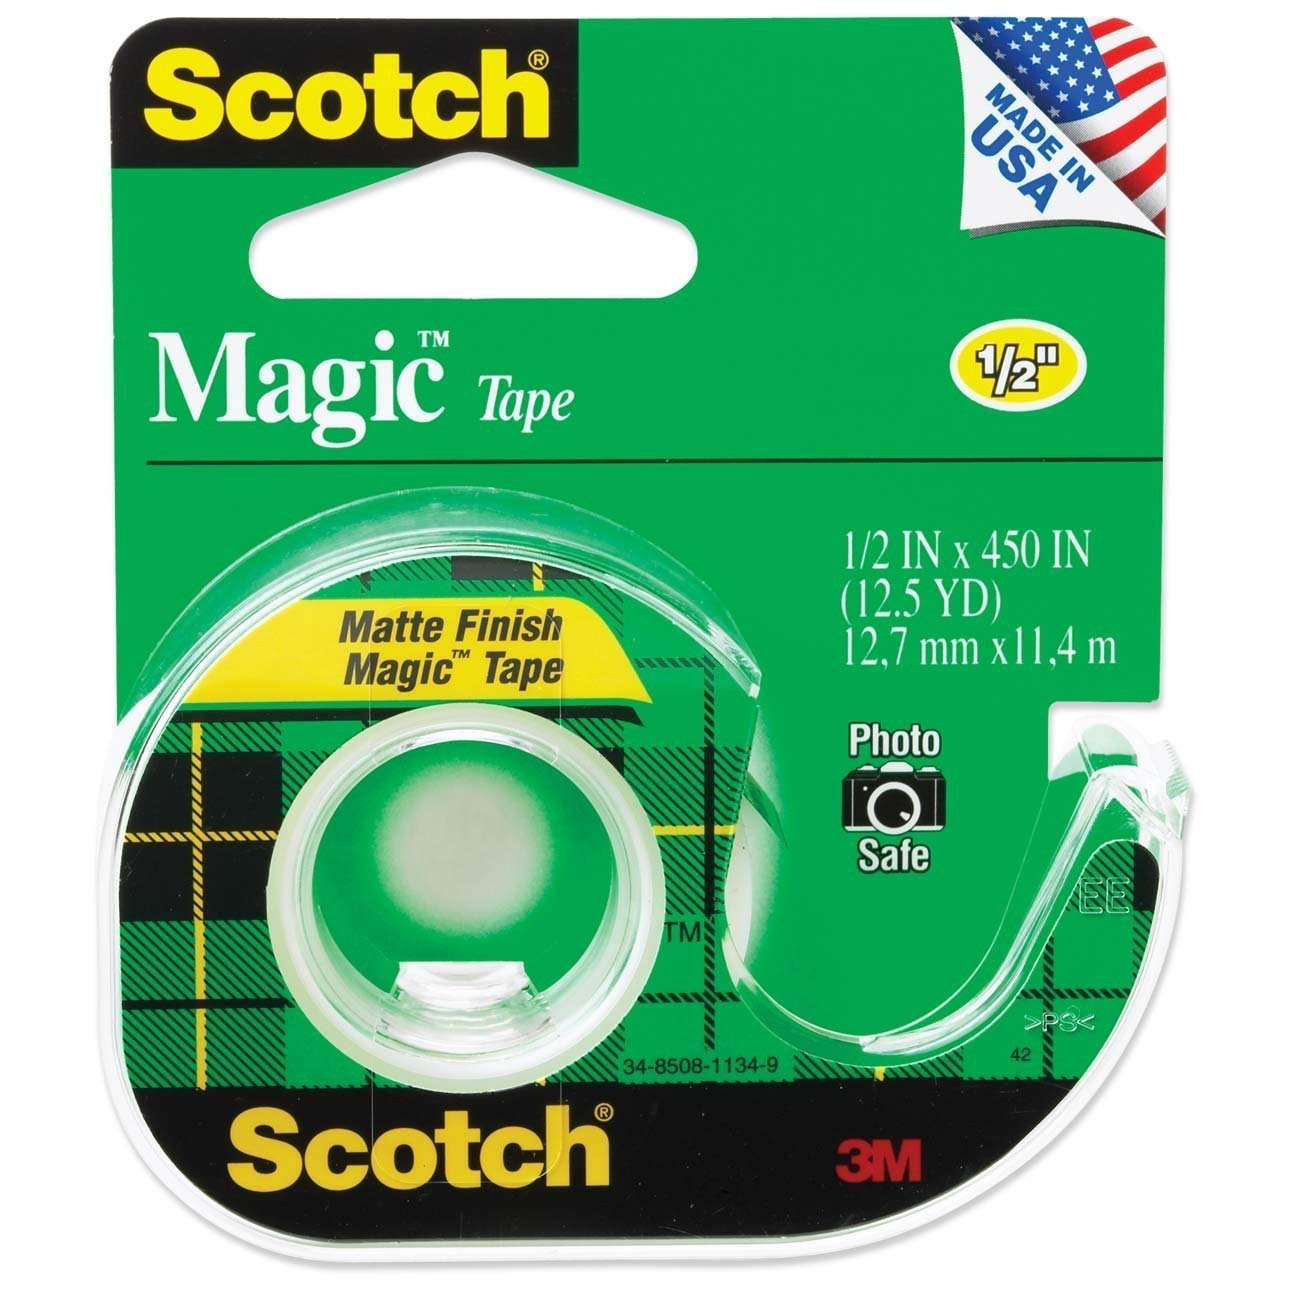 "Scotch Magic Tape 1/2"" x 450"""